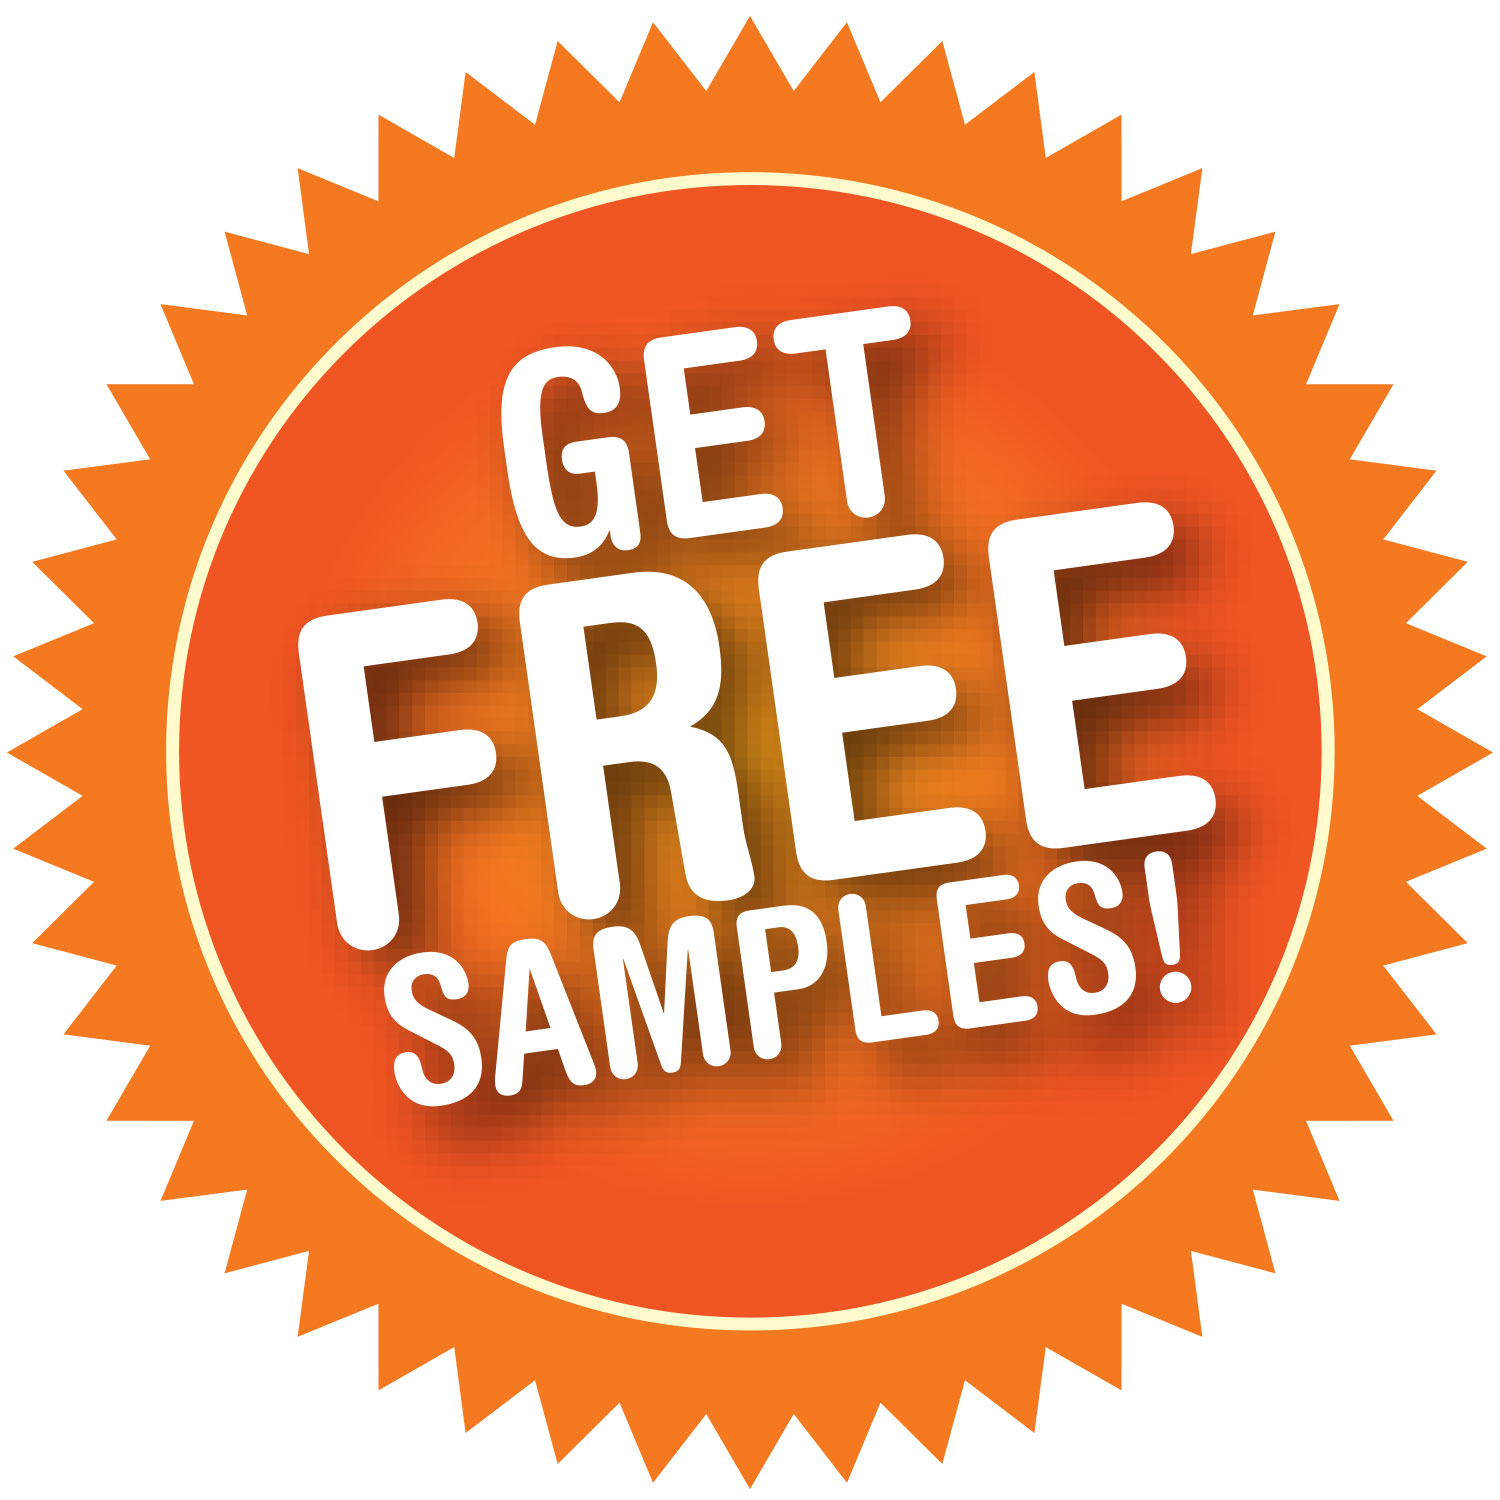 samples saving mamasita sample saturday m m s truvia and more